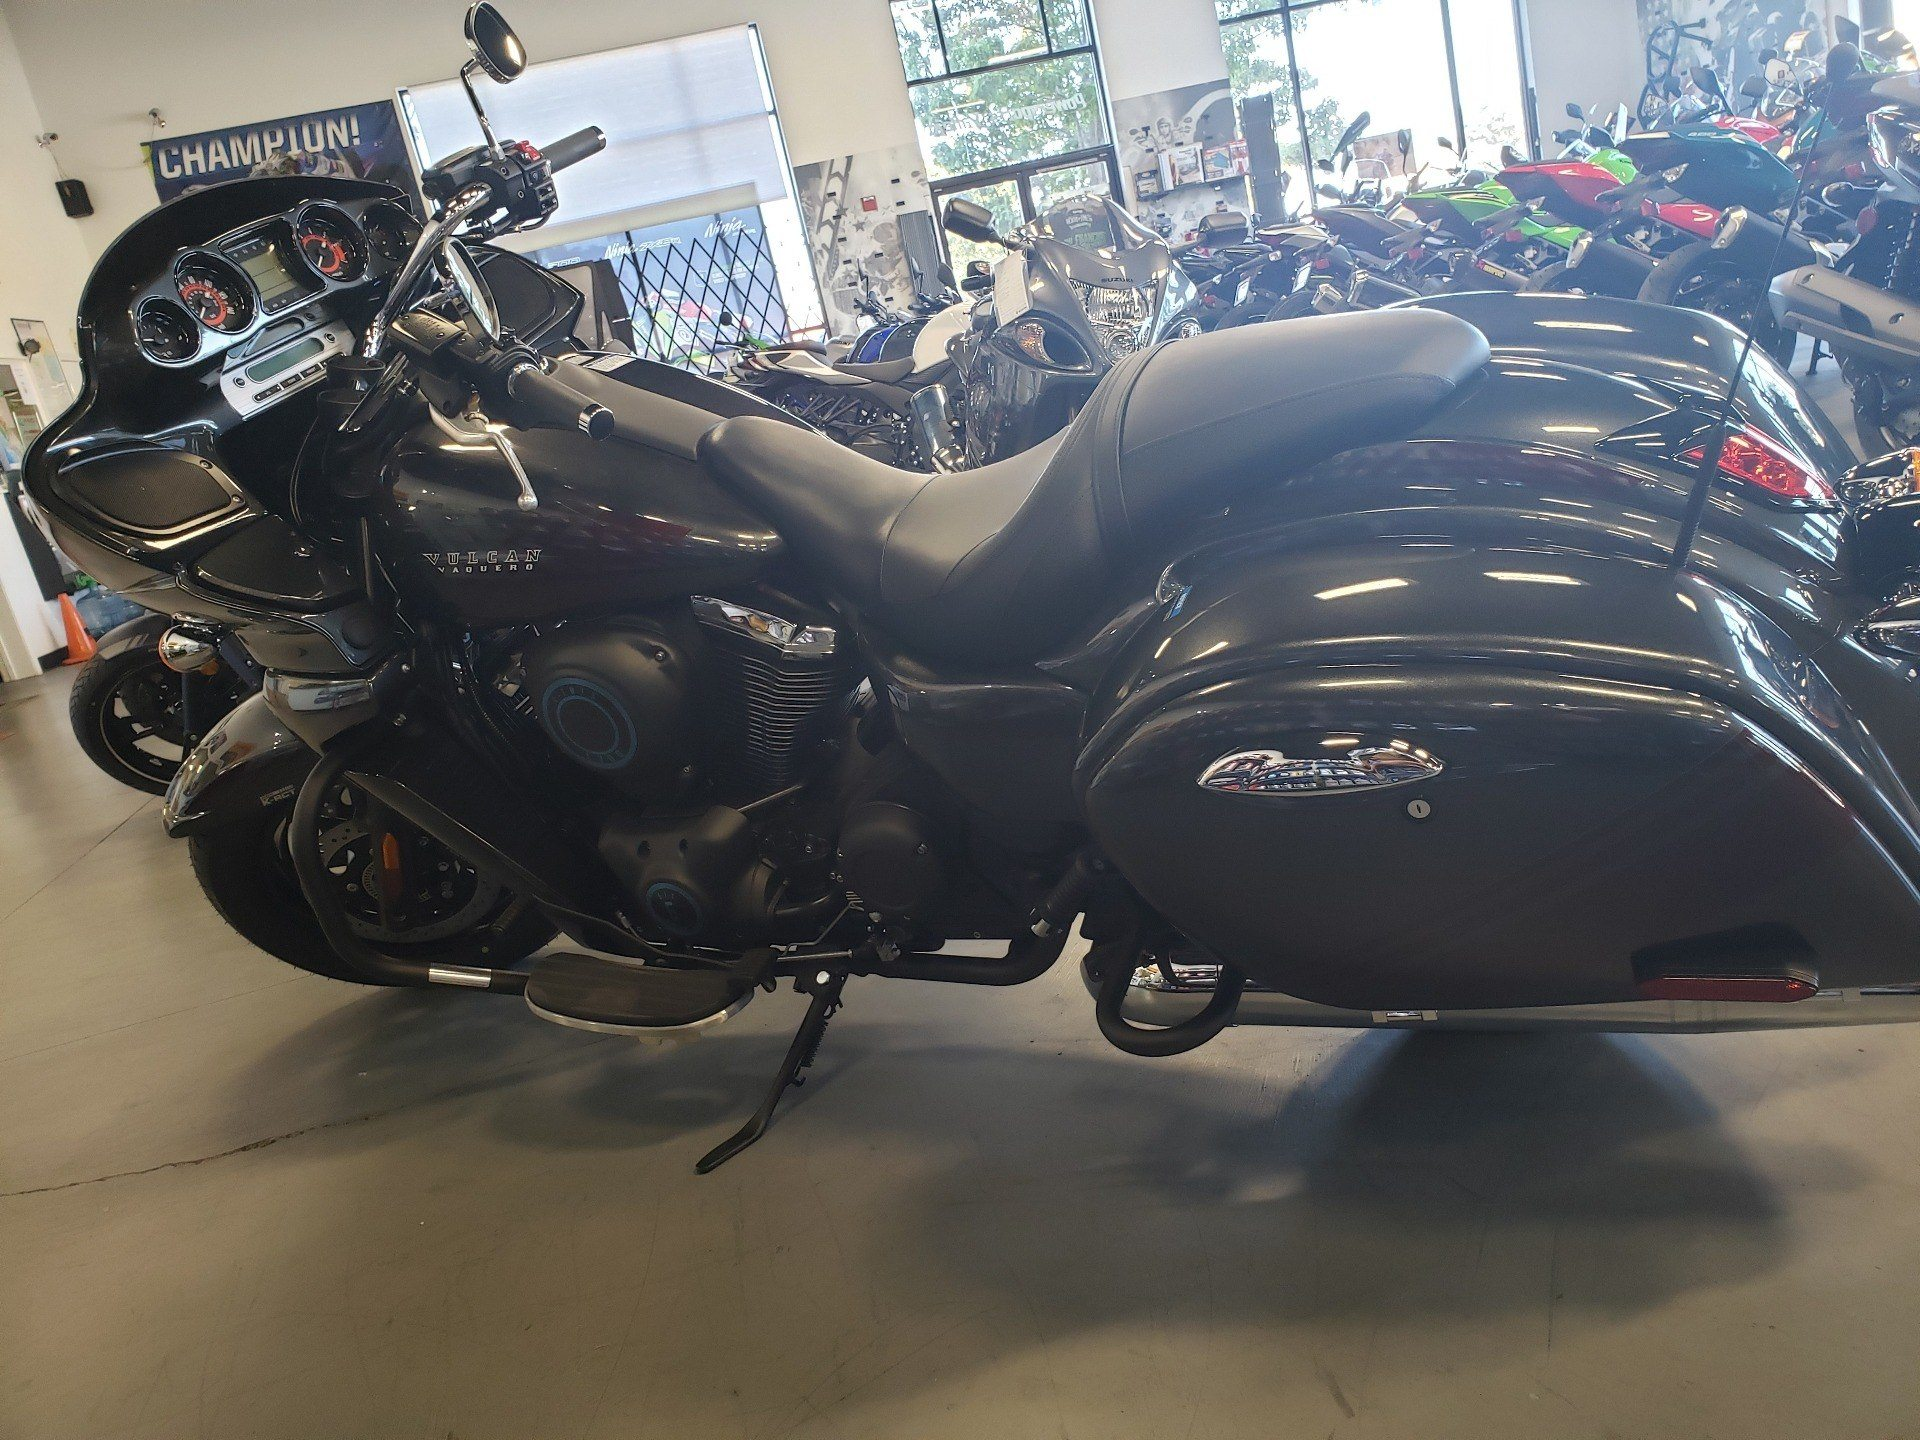 2021 Kawasaki Vulcan 1700 Vaquero ABS in Vallejo, California - Photo 2